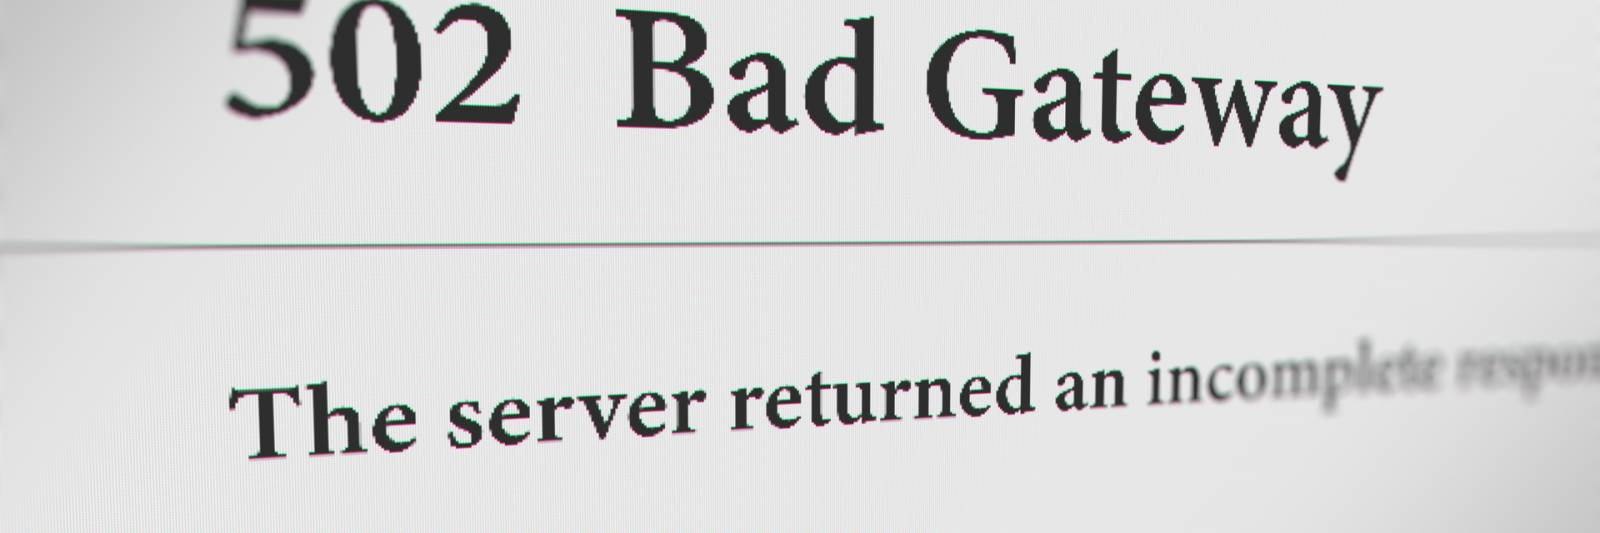 What Is A502 Bad Gateway And How Do You Fix